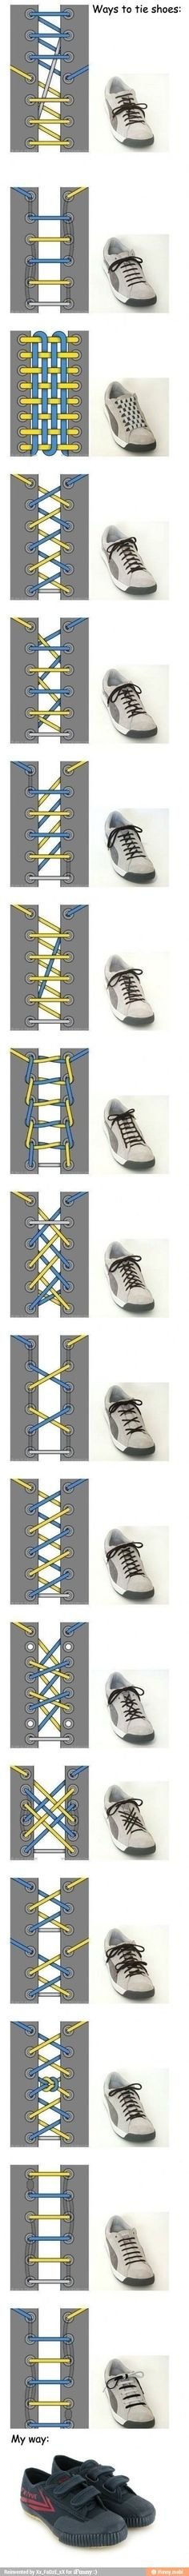 Haha this is funny but now i know different ways to tie my shoes :3